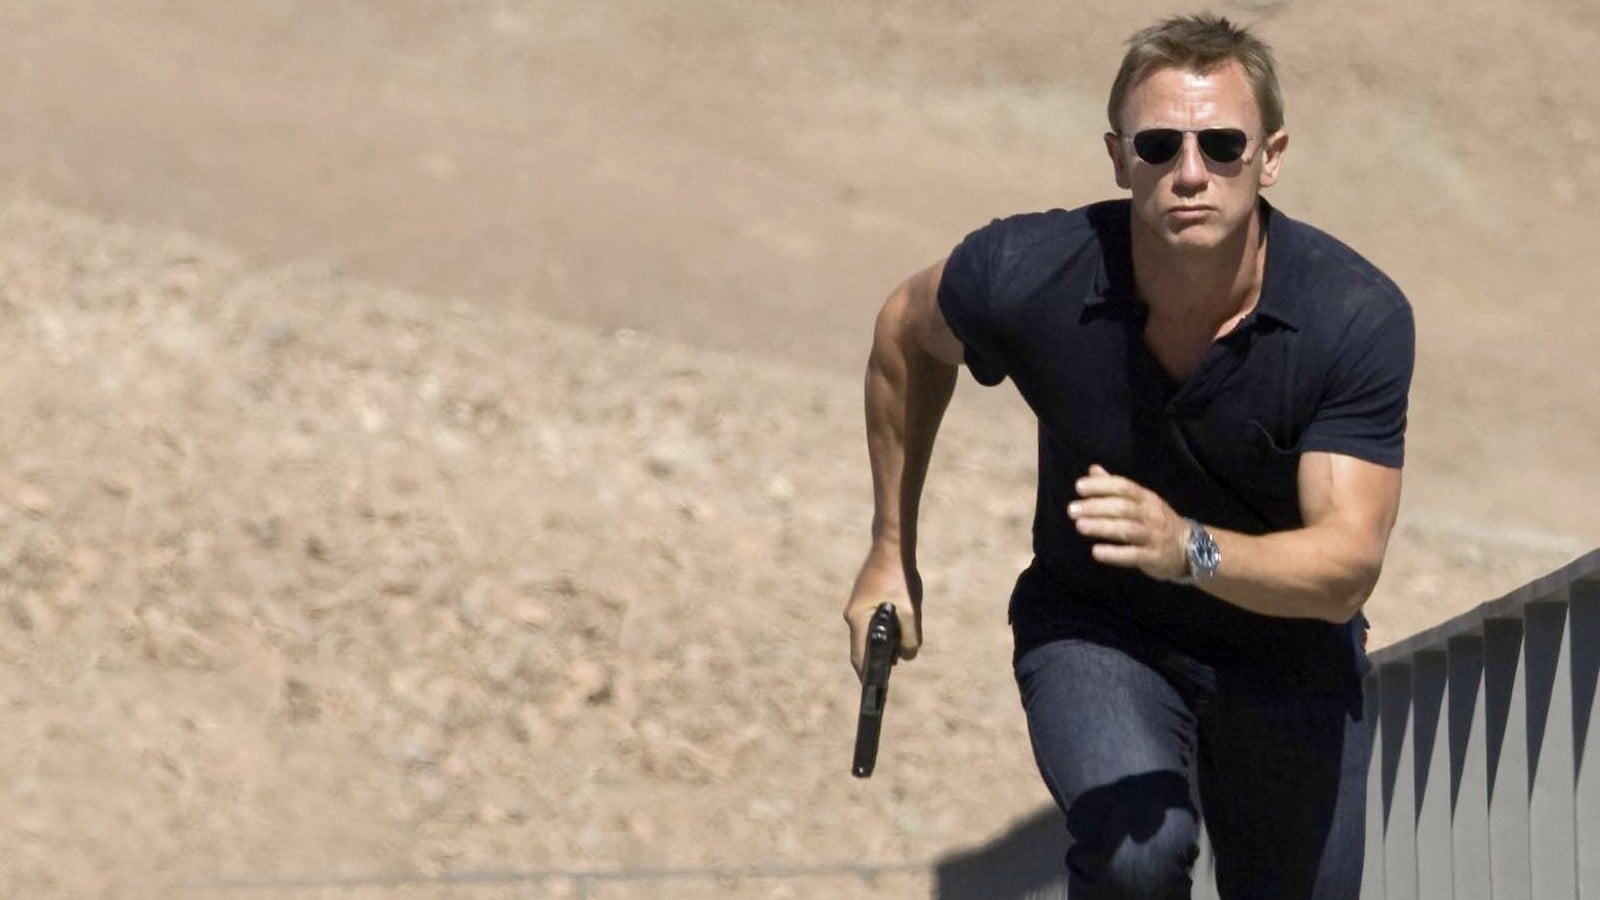 Daniel Craig running in the desert with his Seamaster Diver 300M Co-Axial watch